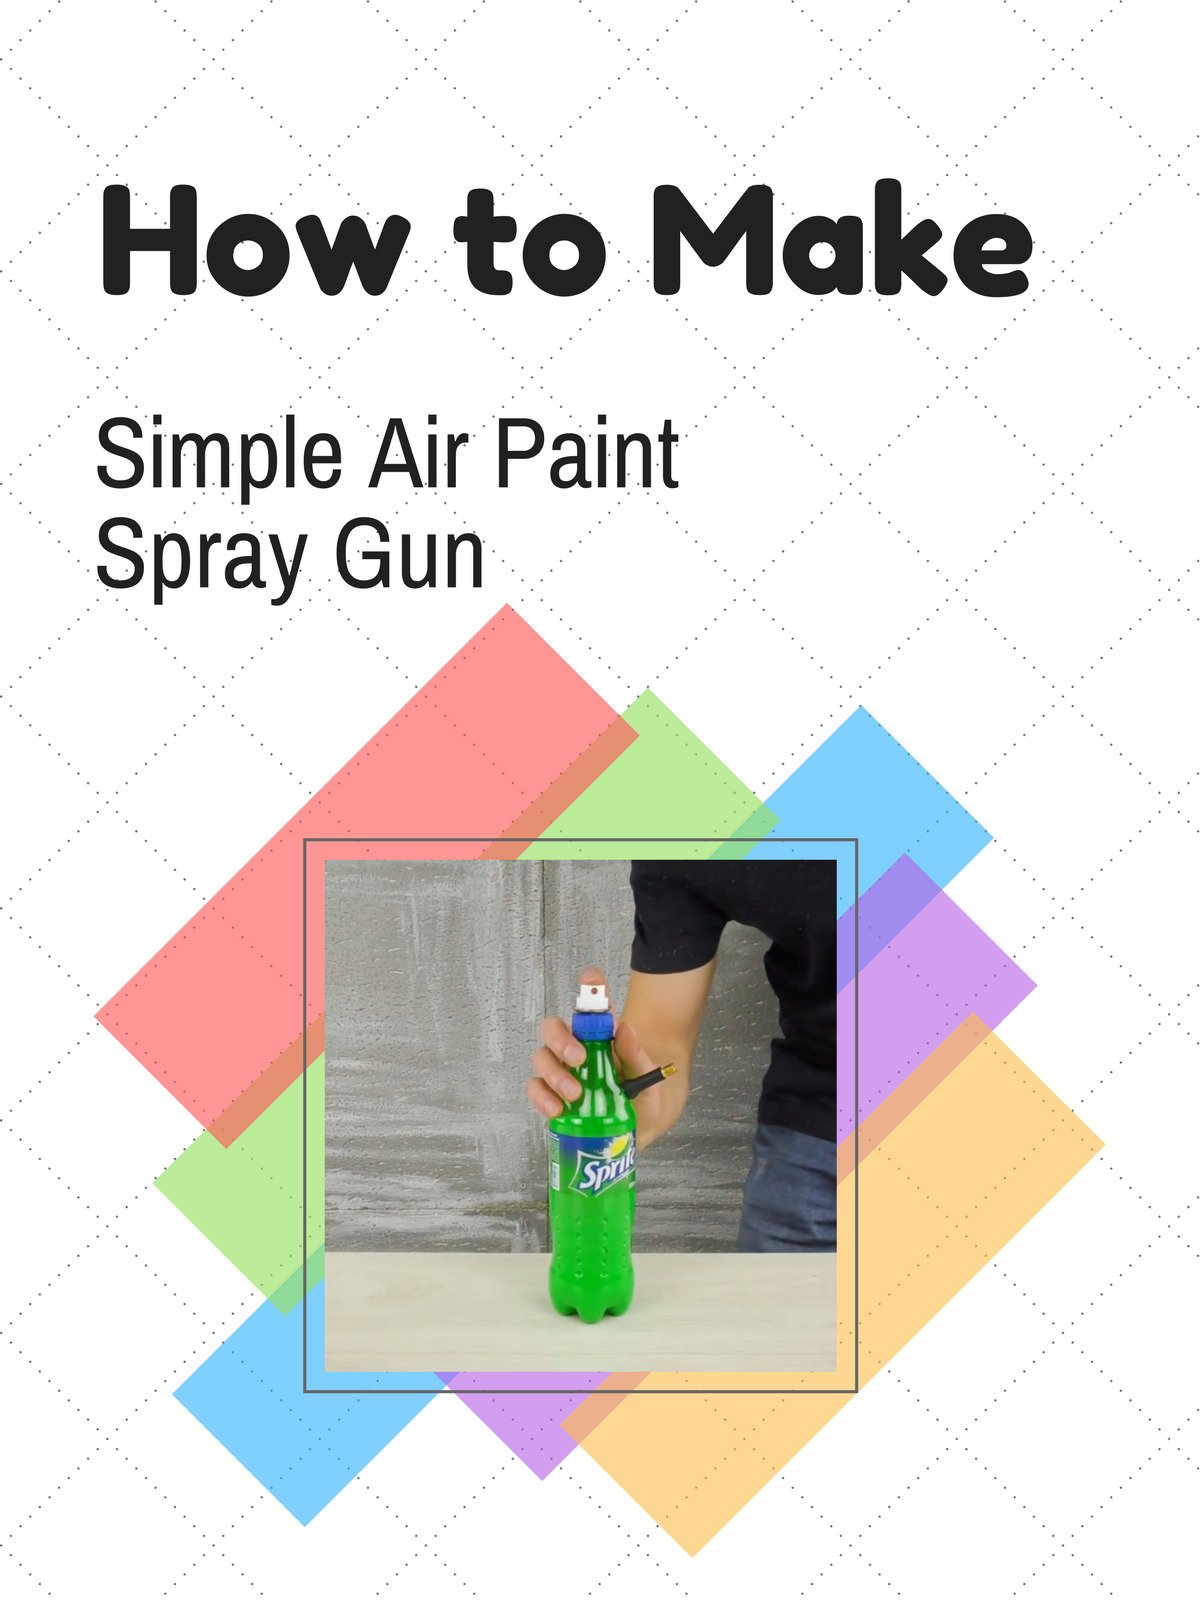 How to Make Simple Air Paint Spray Gun